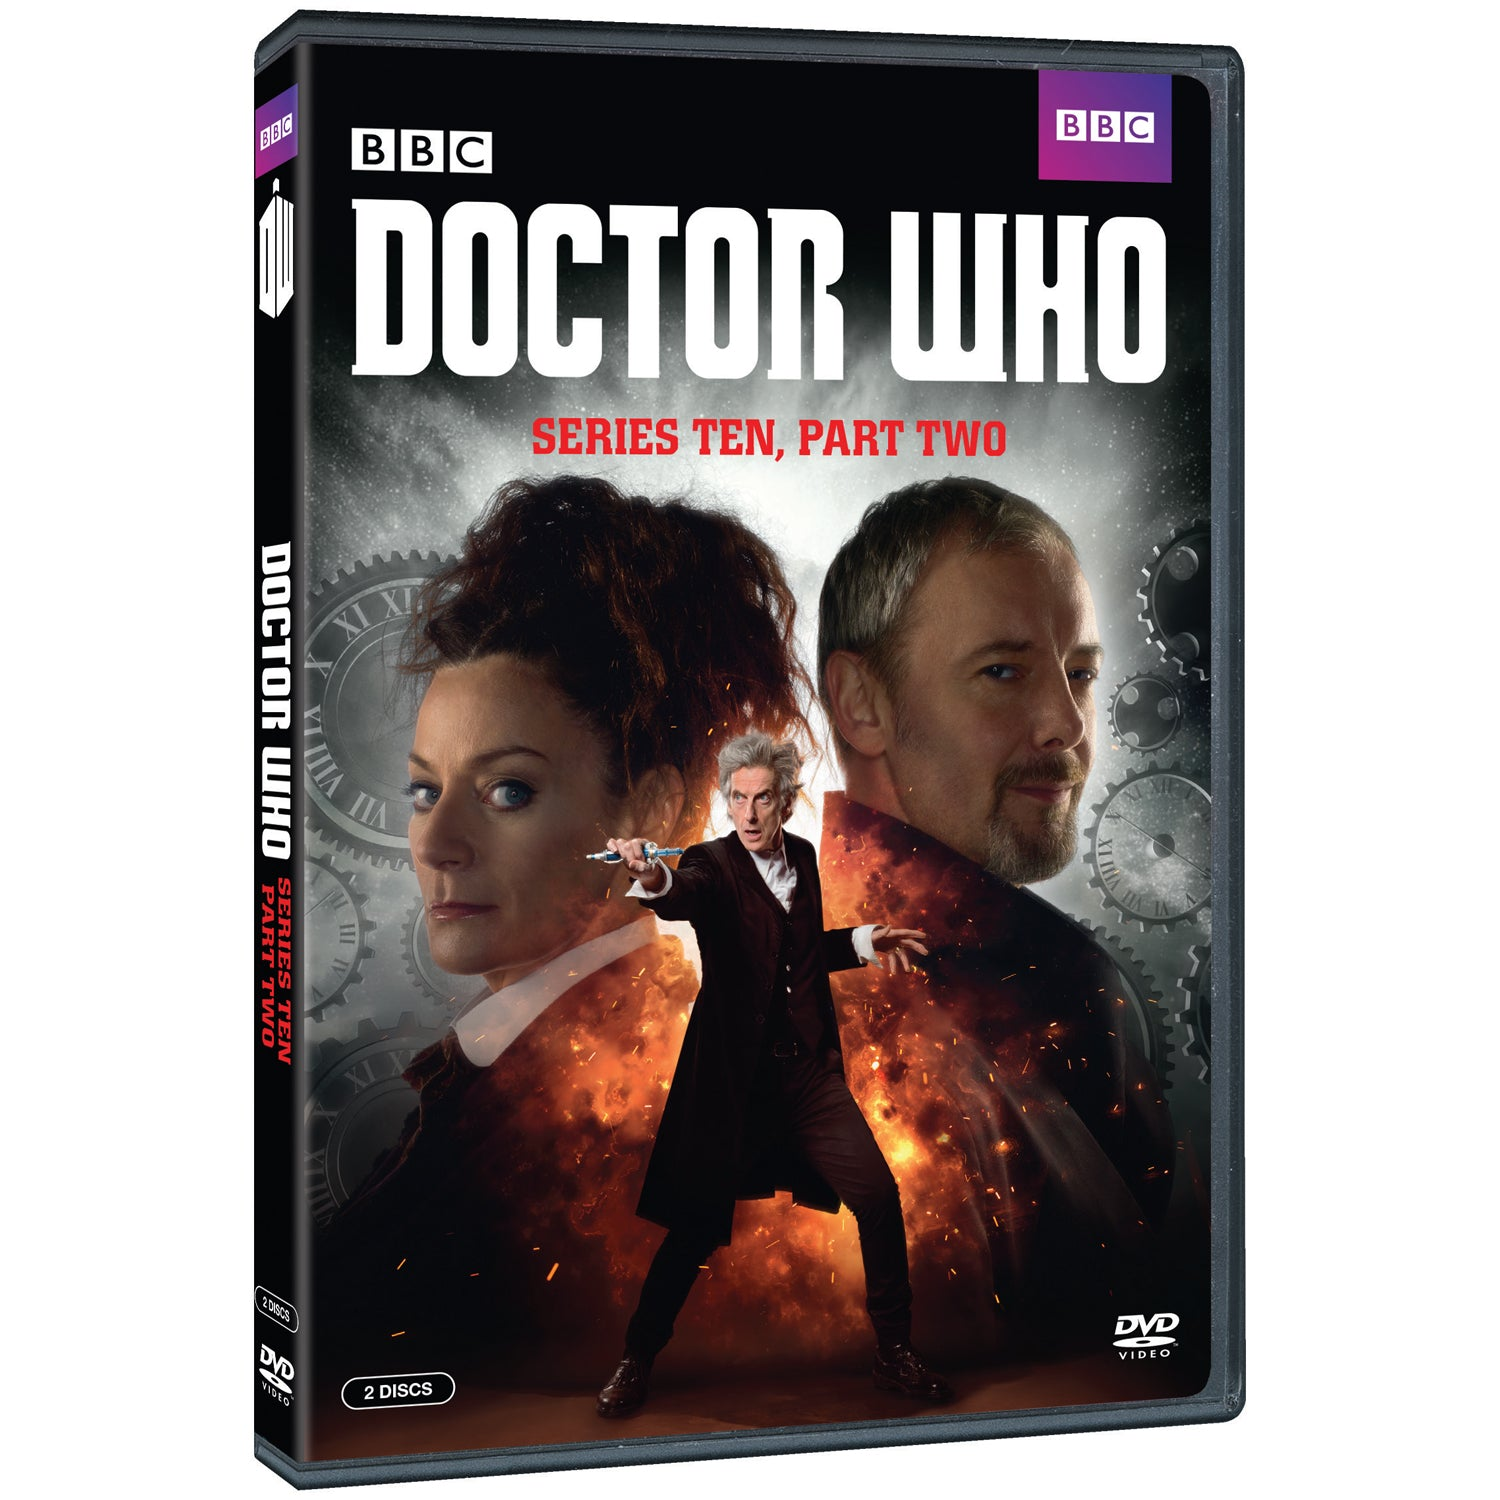 Doctor Who: Series 10 Part 2